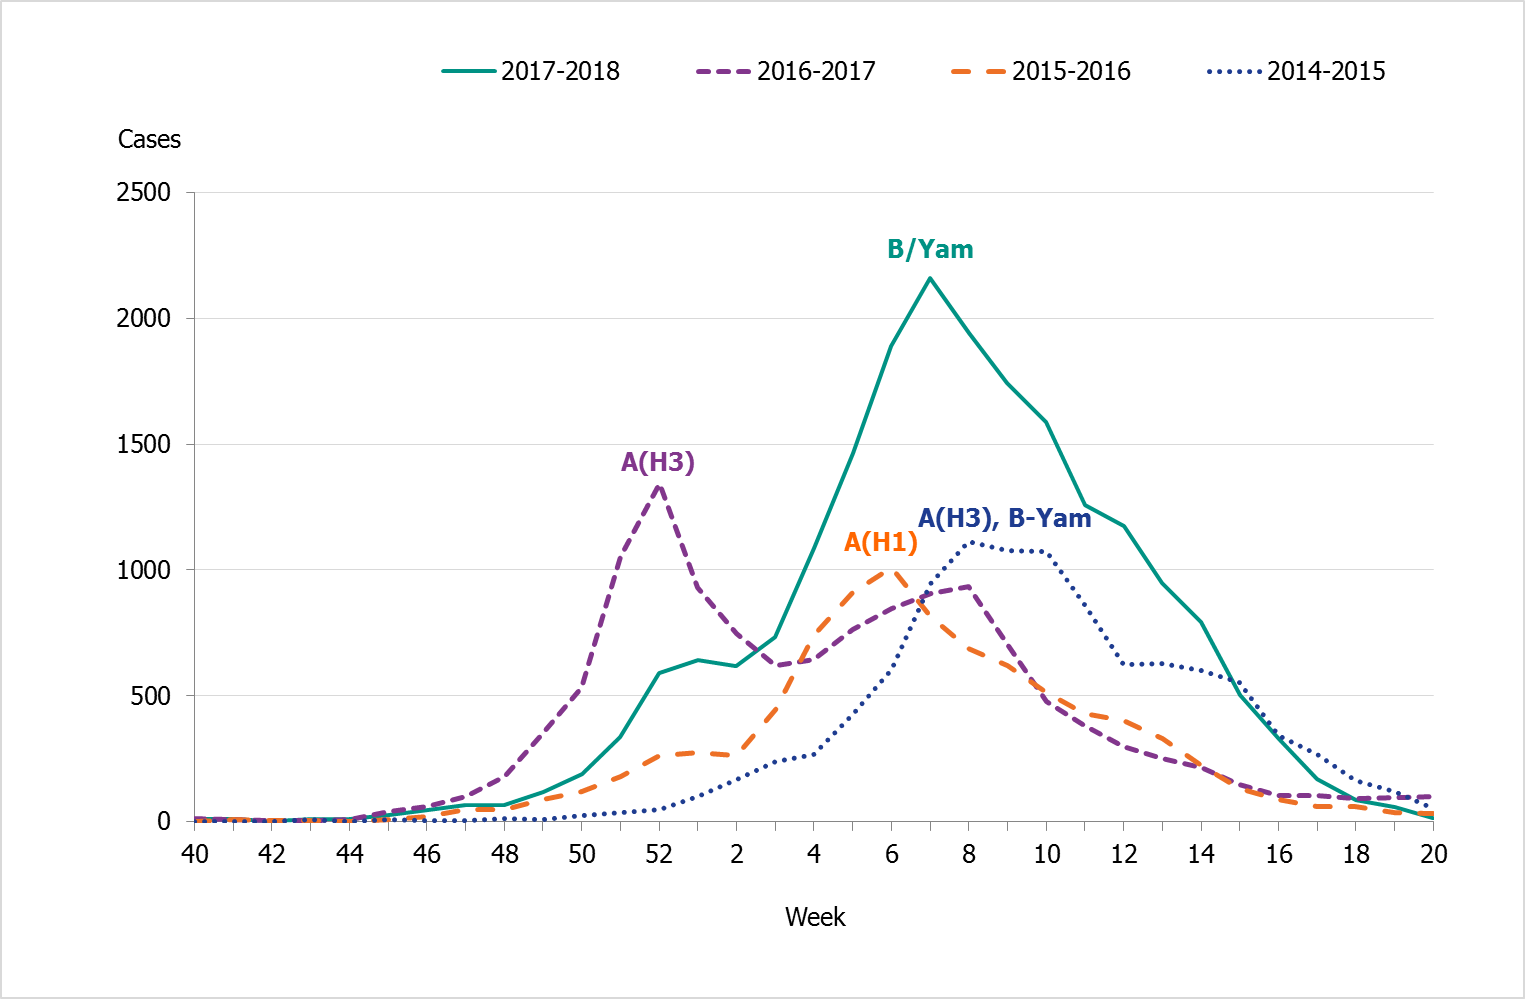 Total number of laboratory-confirmed cases of influenza (all types) per week, four seasons. Dominating types as follows: 2014-2015 AH3 and B-Yamagata; 2015-2016 AH1; 2016-2017 AH3; 2017-2018 B-Yamagata.